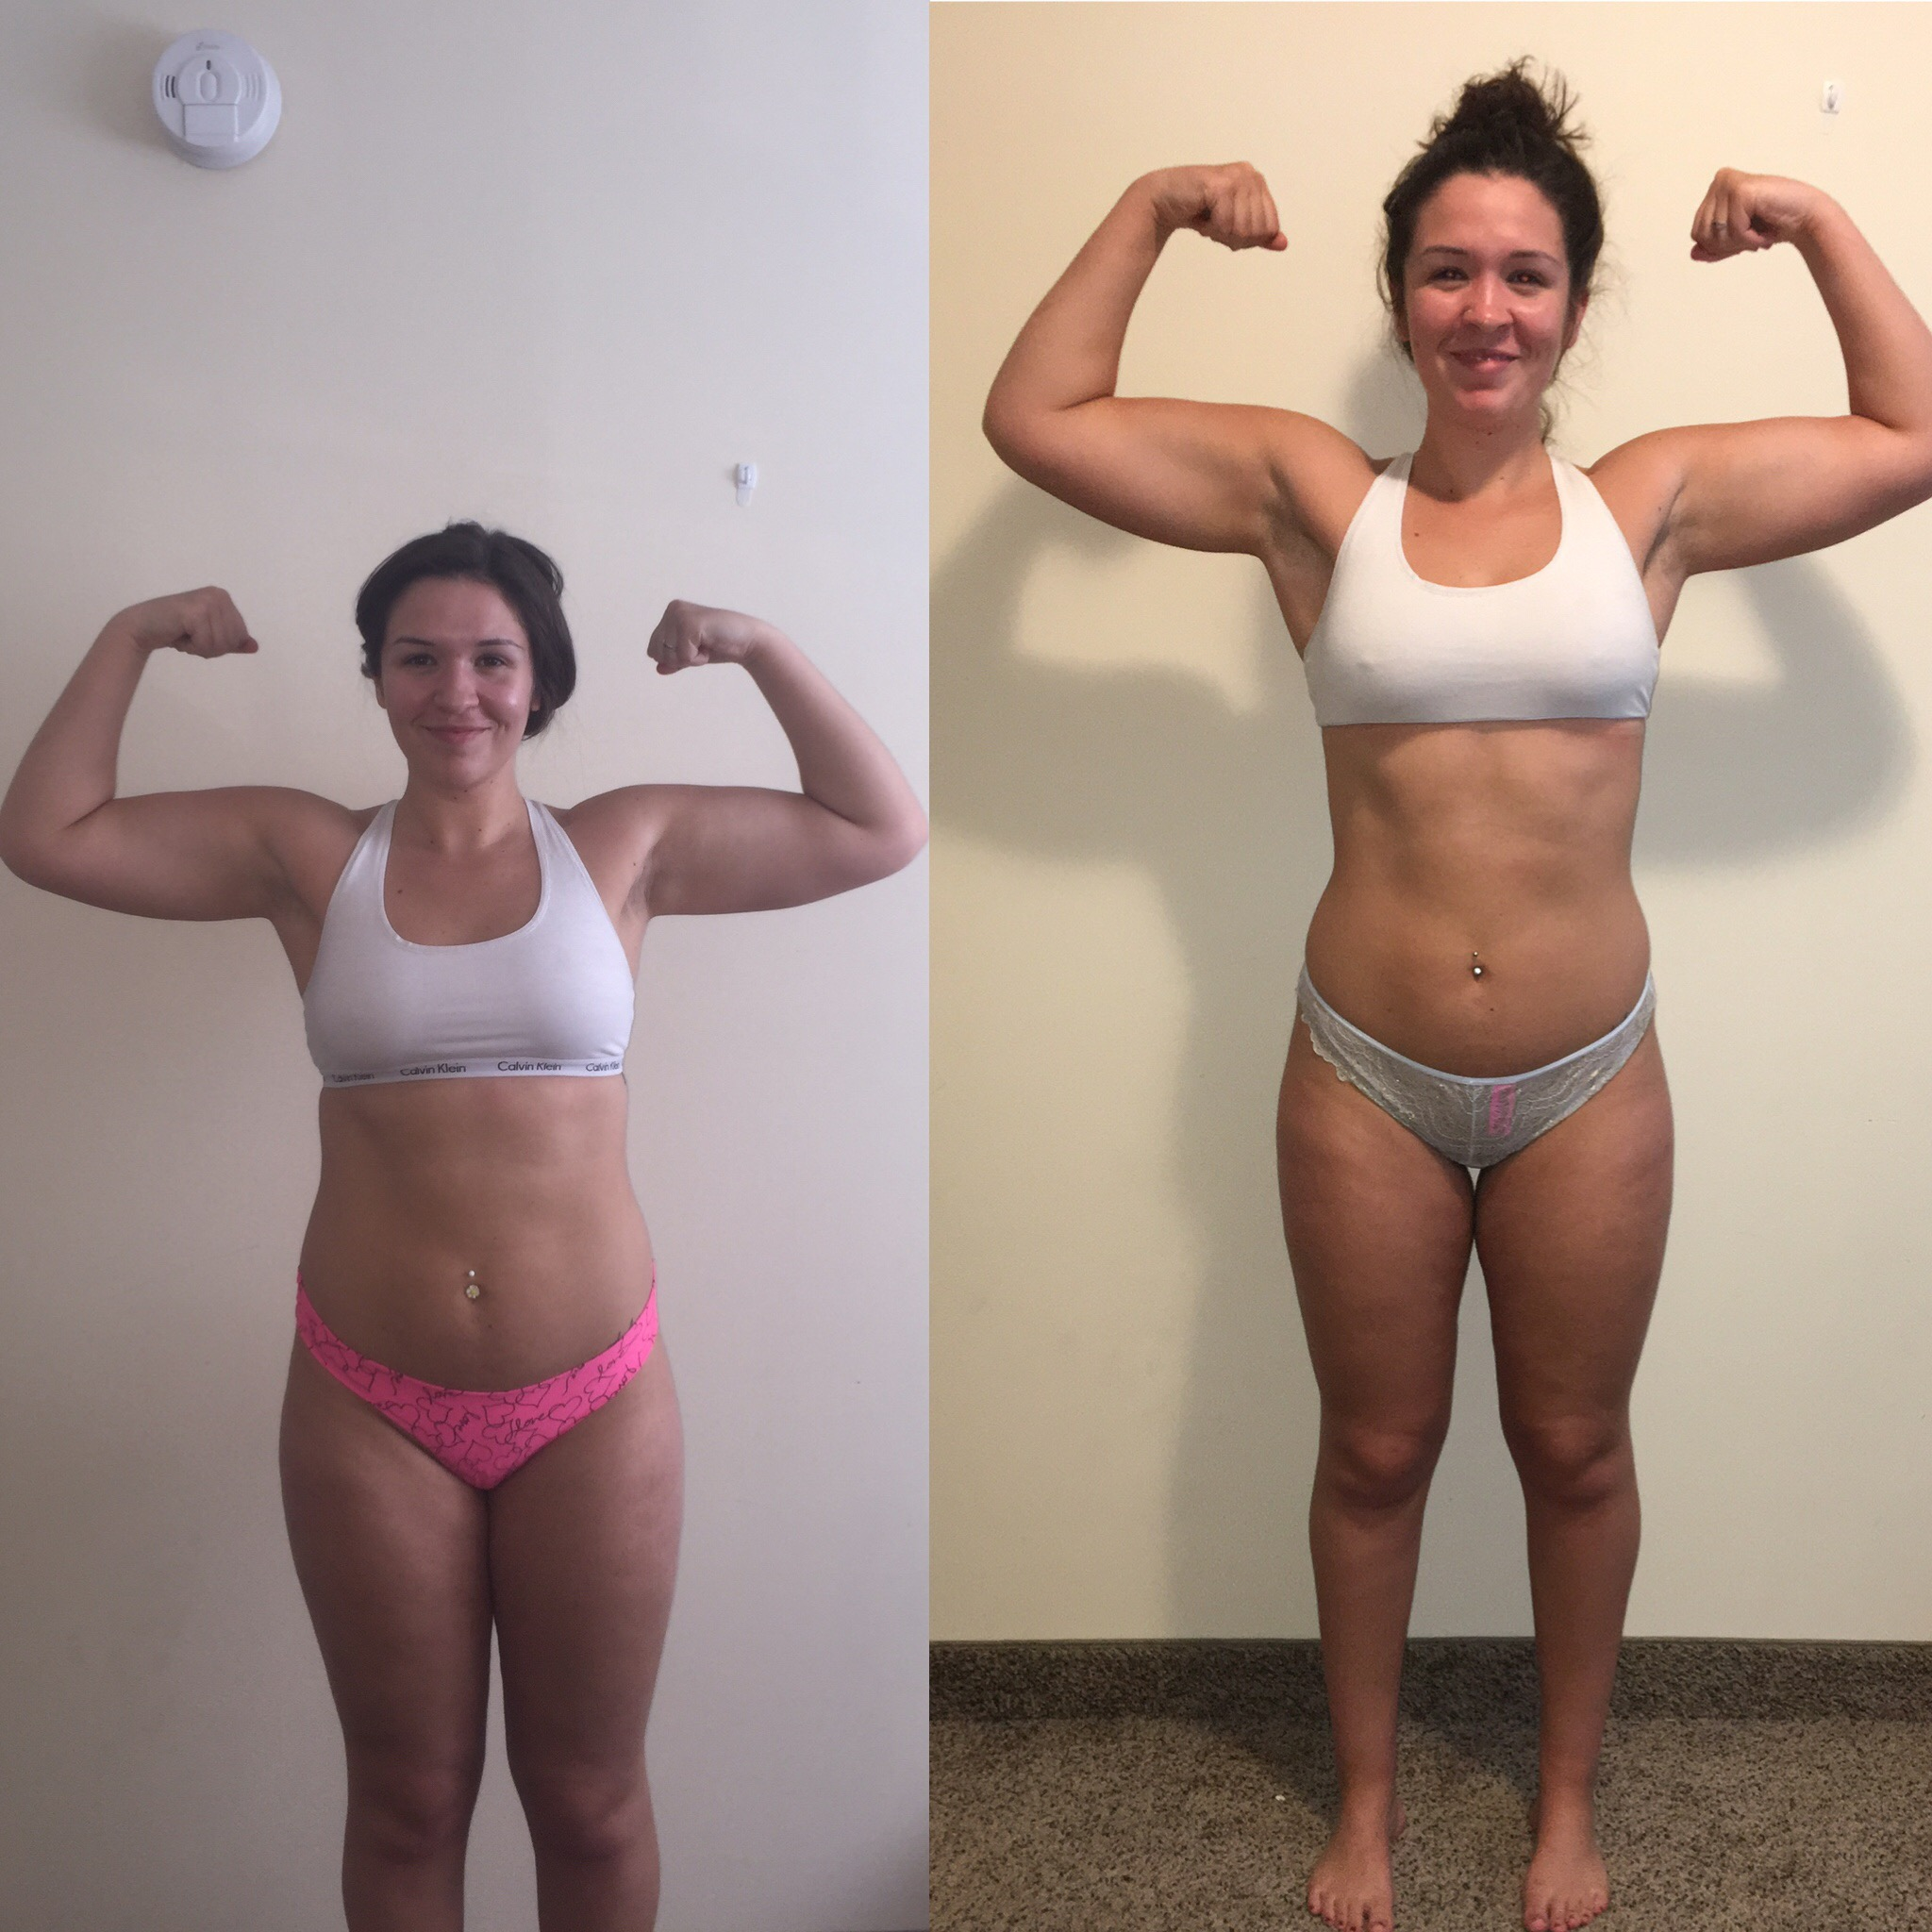 Bianca - While working 2 jobs, Bianca managed to follow a strict diet and intense workout regiment that fit her lifestyle! Bianca lost in 12 weeks 10% body fat, 12 lbs and gained a knowledge in the kitchen and gym forever affecting her life in a positive way!